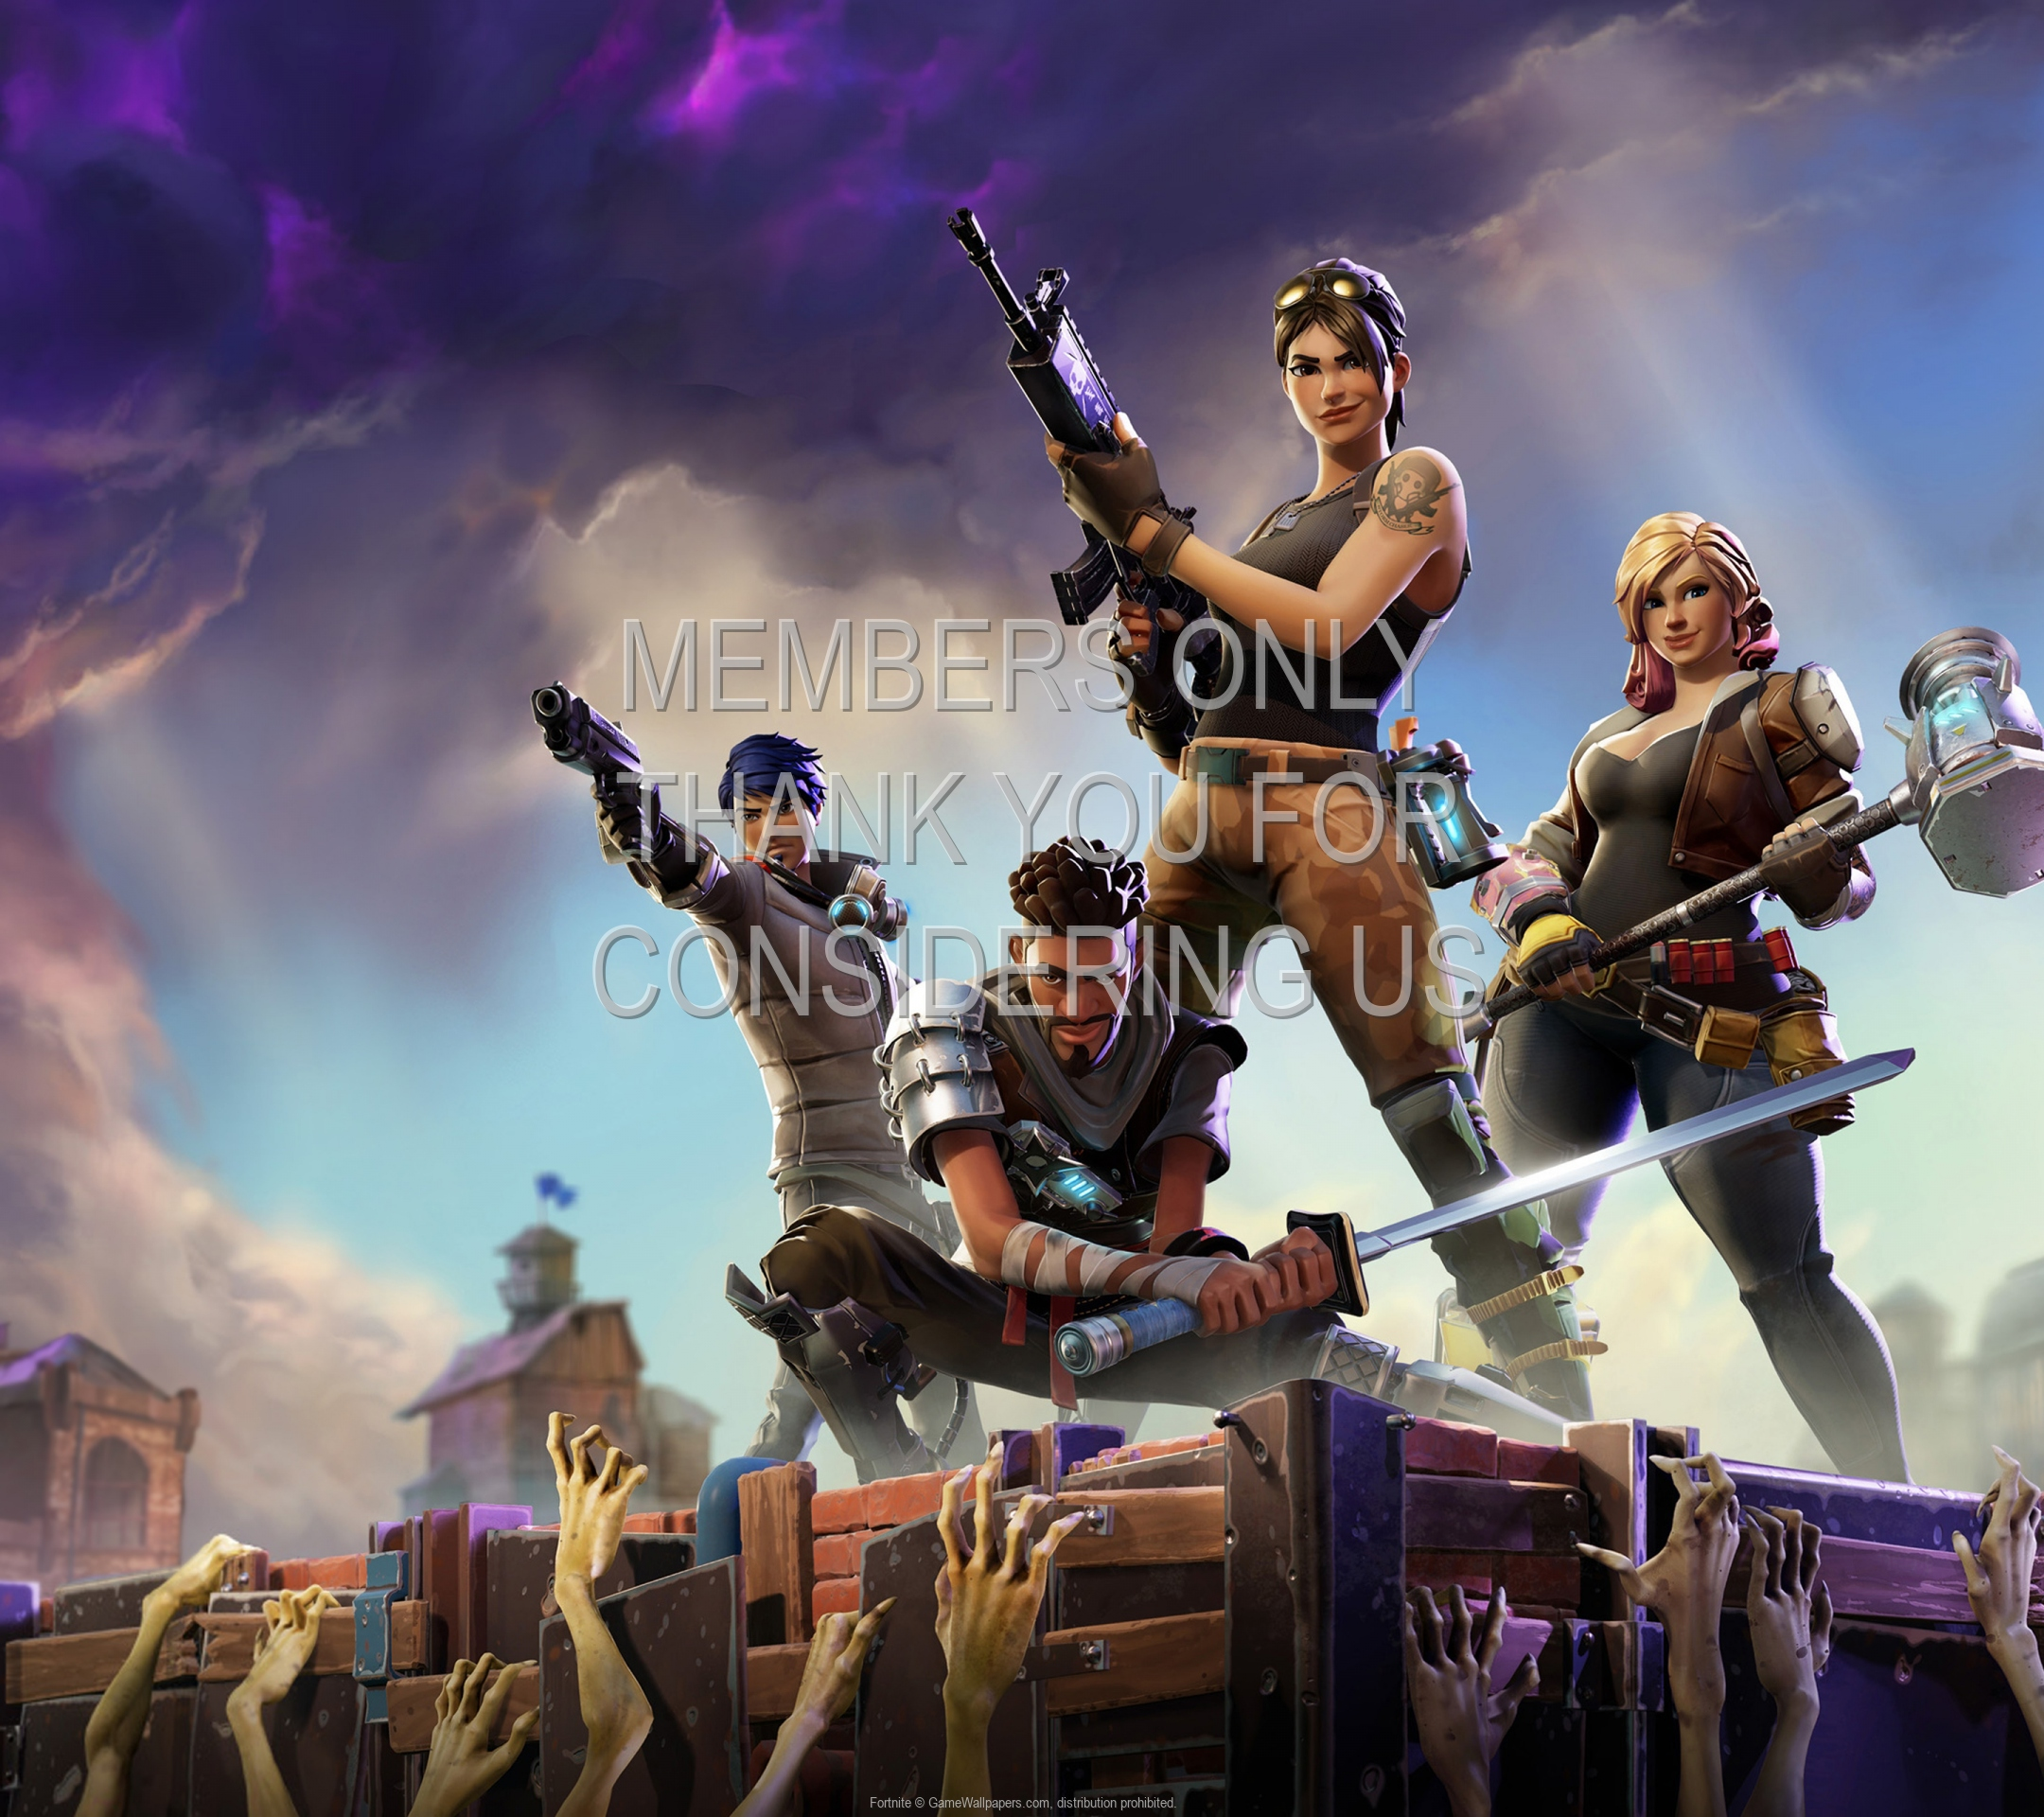 Fortnite 1920x1080 Mobile wallpaper or background 03